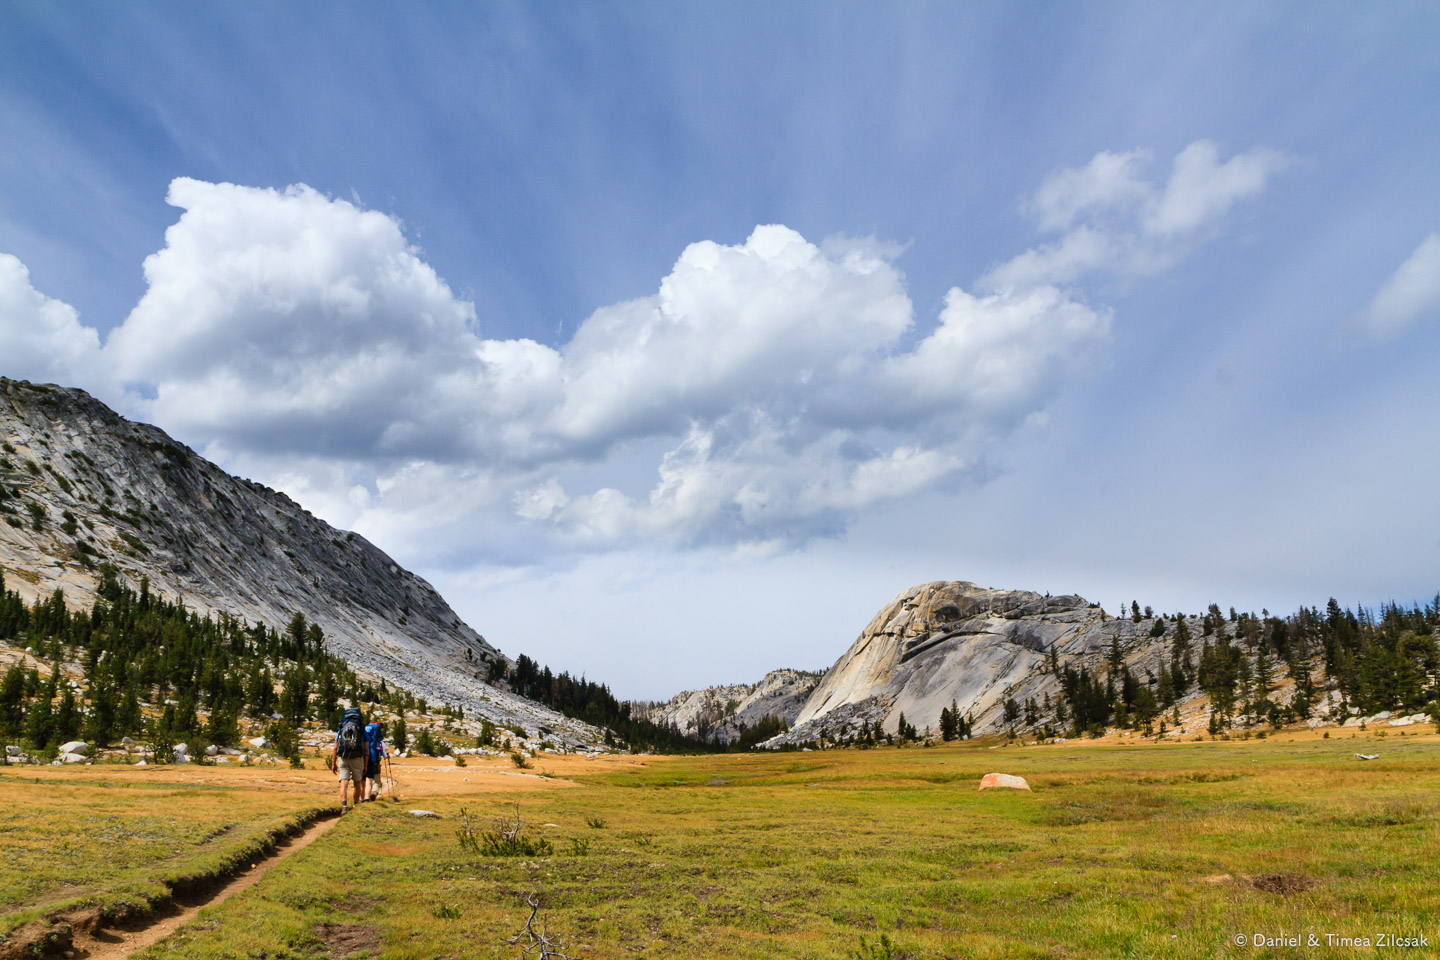 Backpacking across a beautiful meadow on our way to Merced Lake,